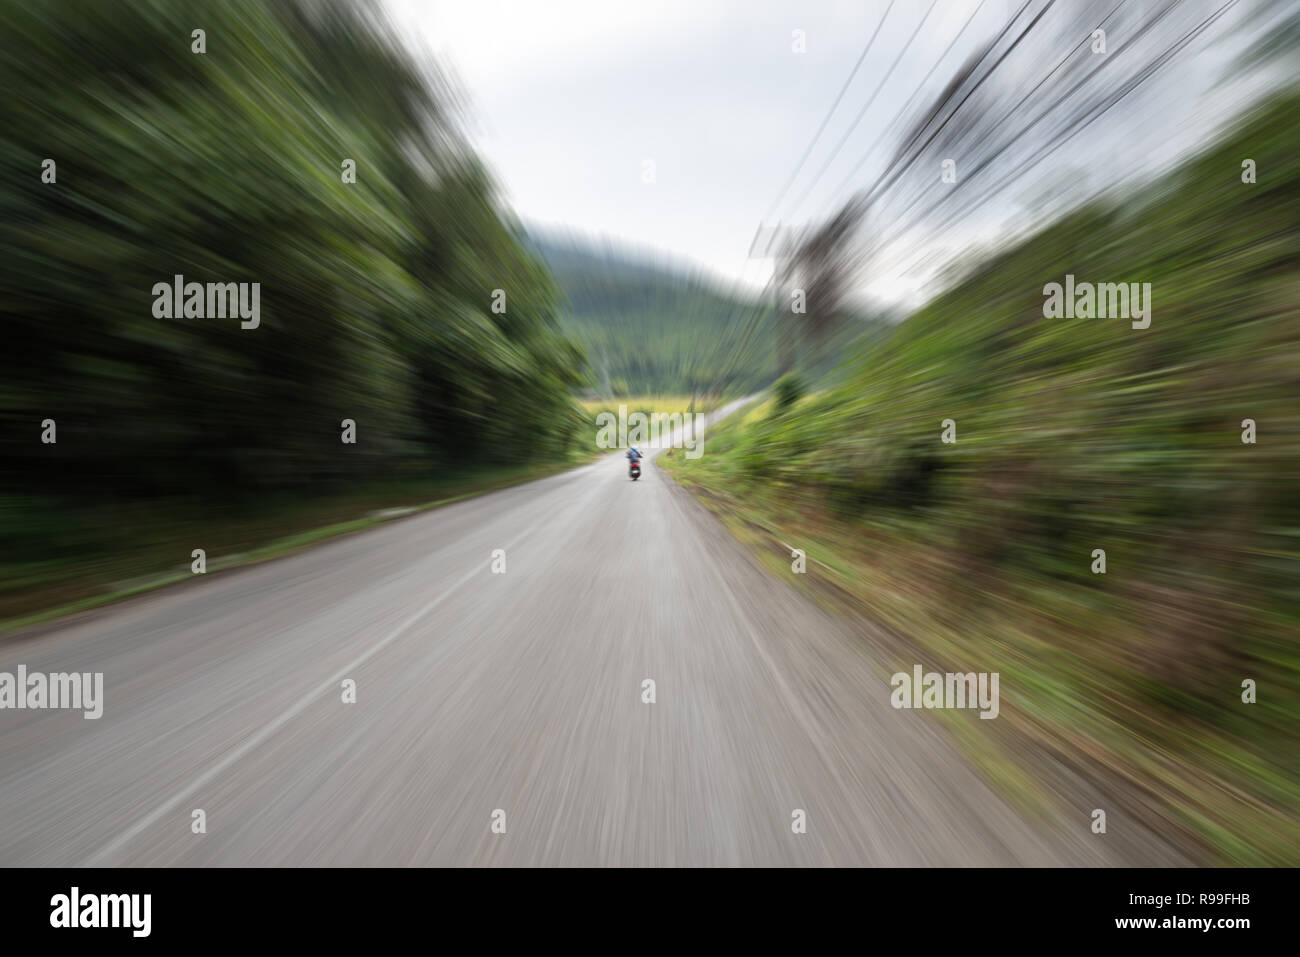 view from behind a scooter on a road in Laos with motion blur showing speed - Stock Image